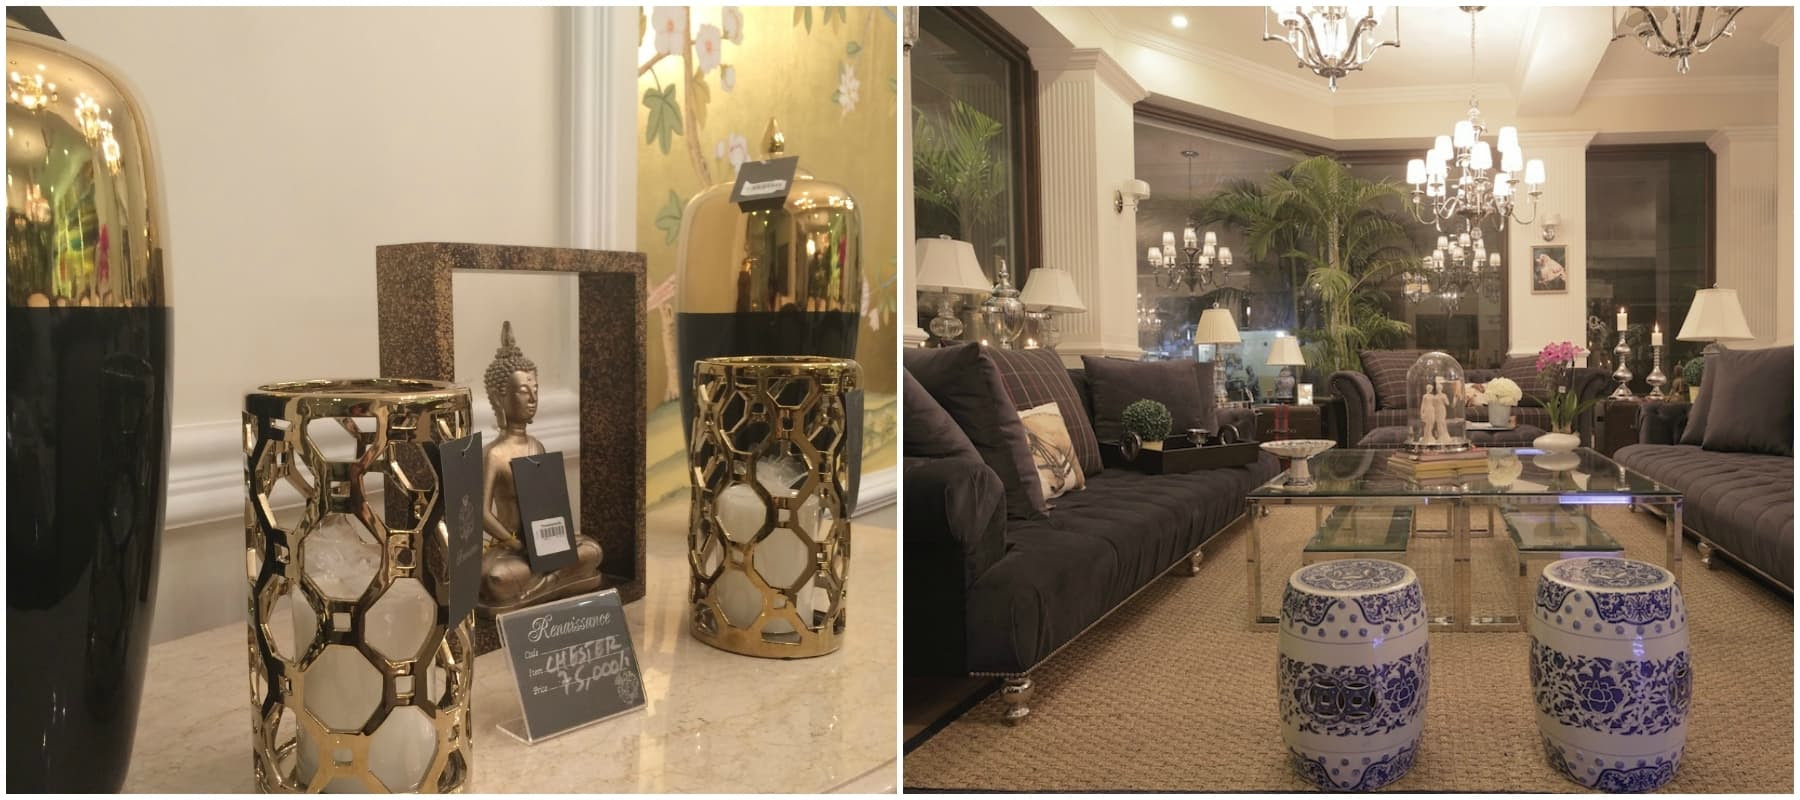 Home Decoration Accessories In Pakistan